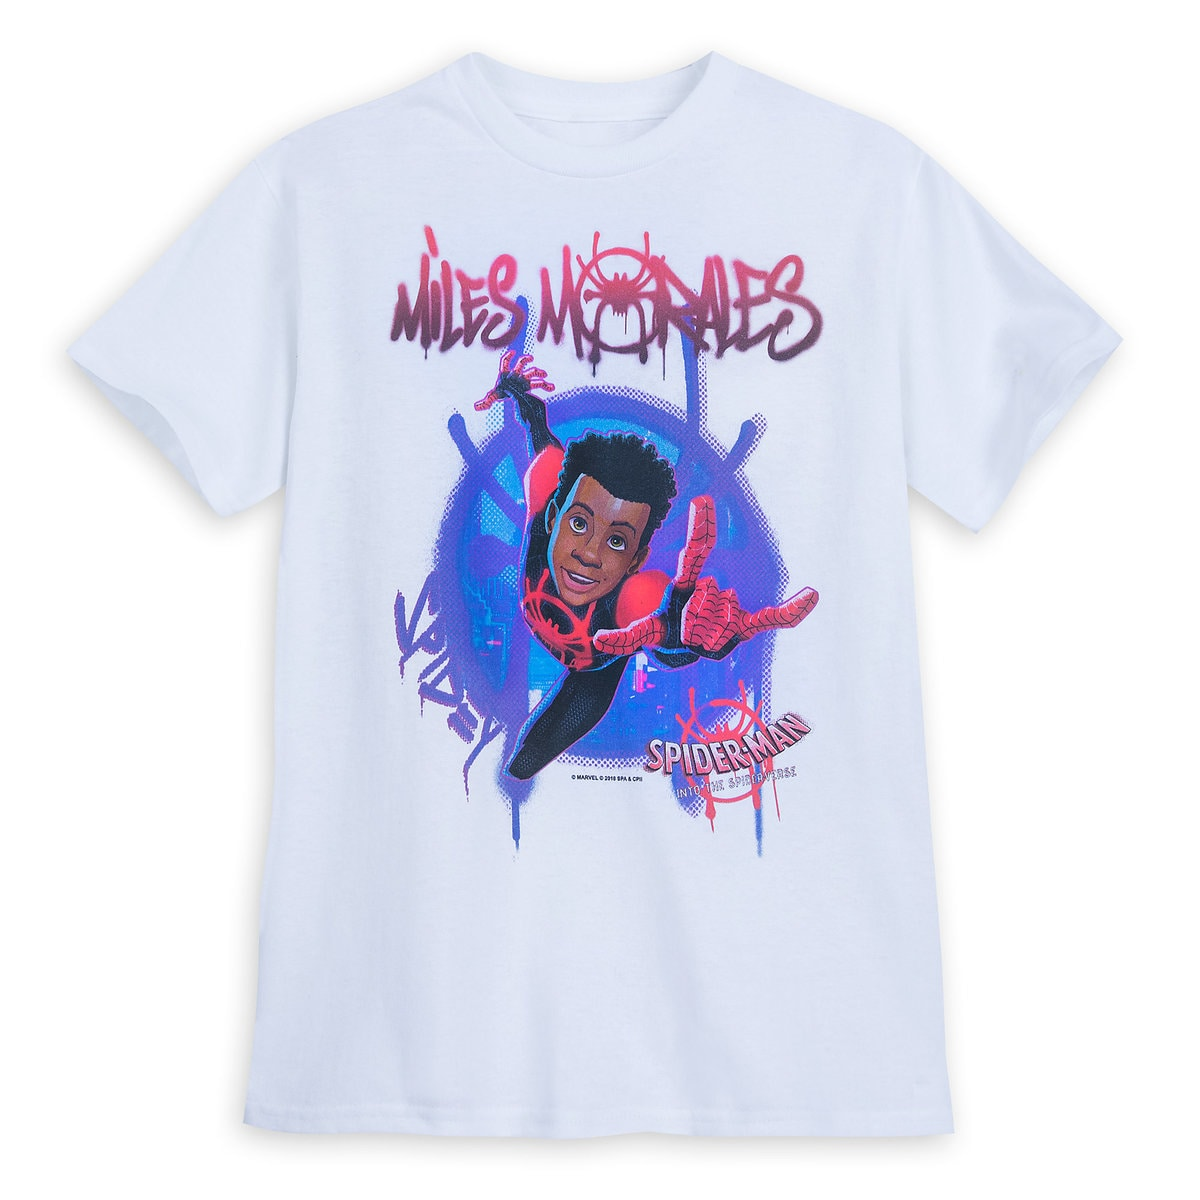 16c3c6a8 Spider-Man: Into the Spider-Verse Miles Morales T-Shirt for Boys ...